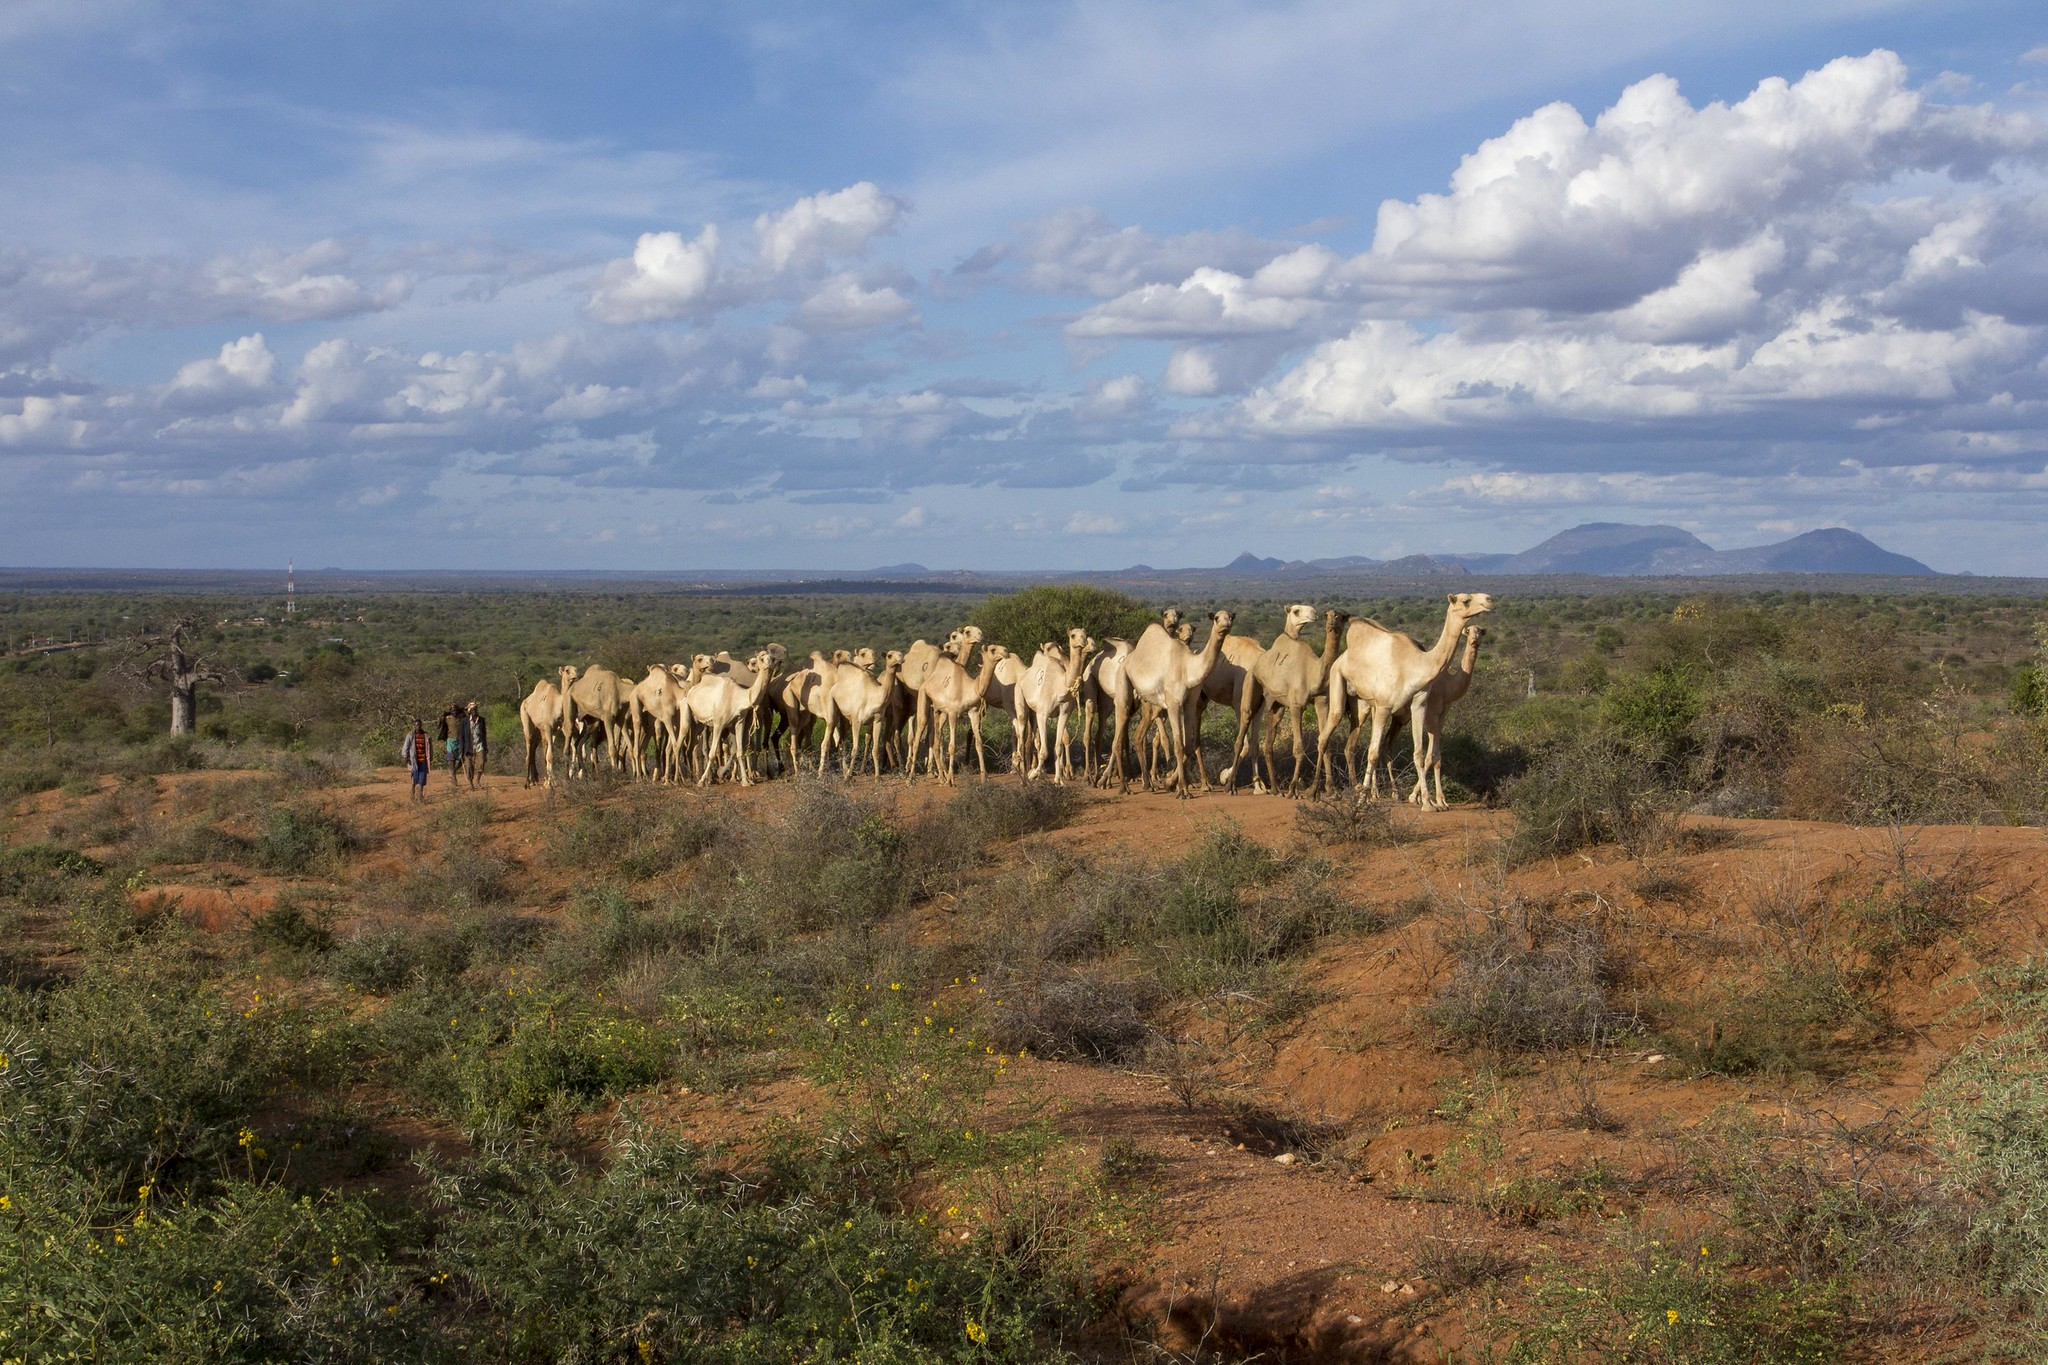 <p>Kenyan herders\' switch to camels is an example of transformative adaptation to climate change. Photo by Flore de Preneuf/World Bank.</p>